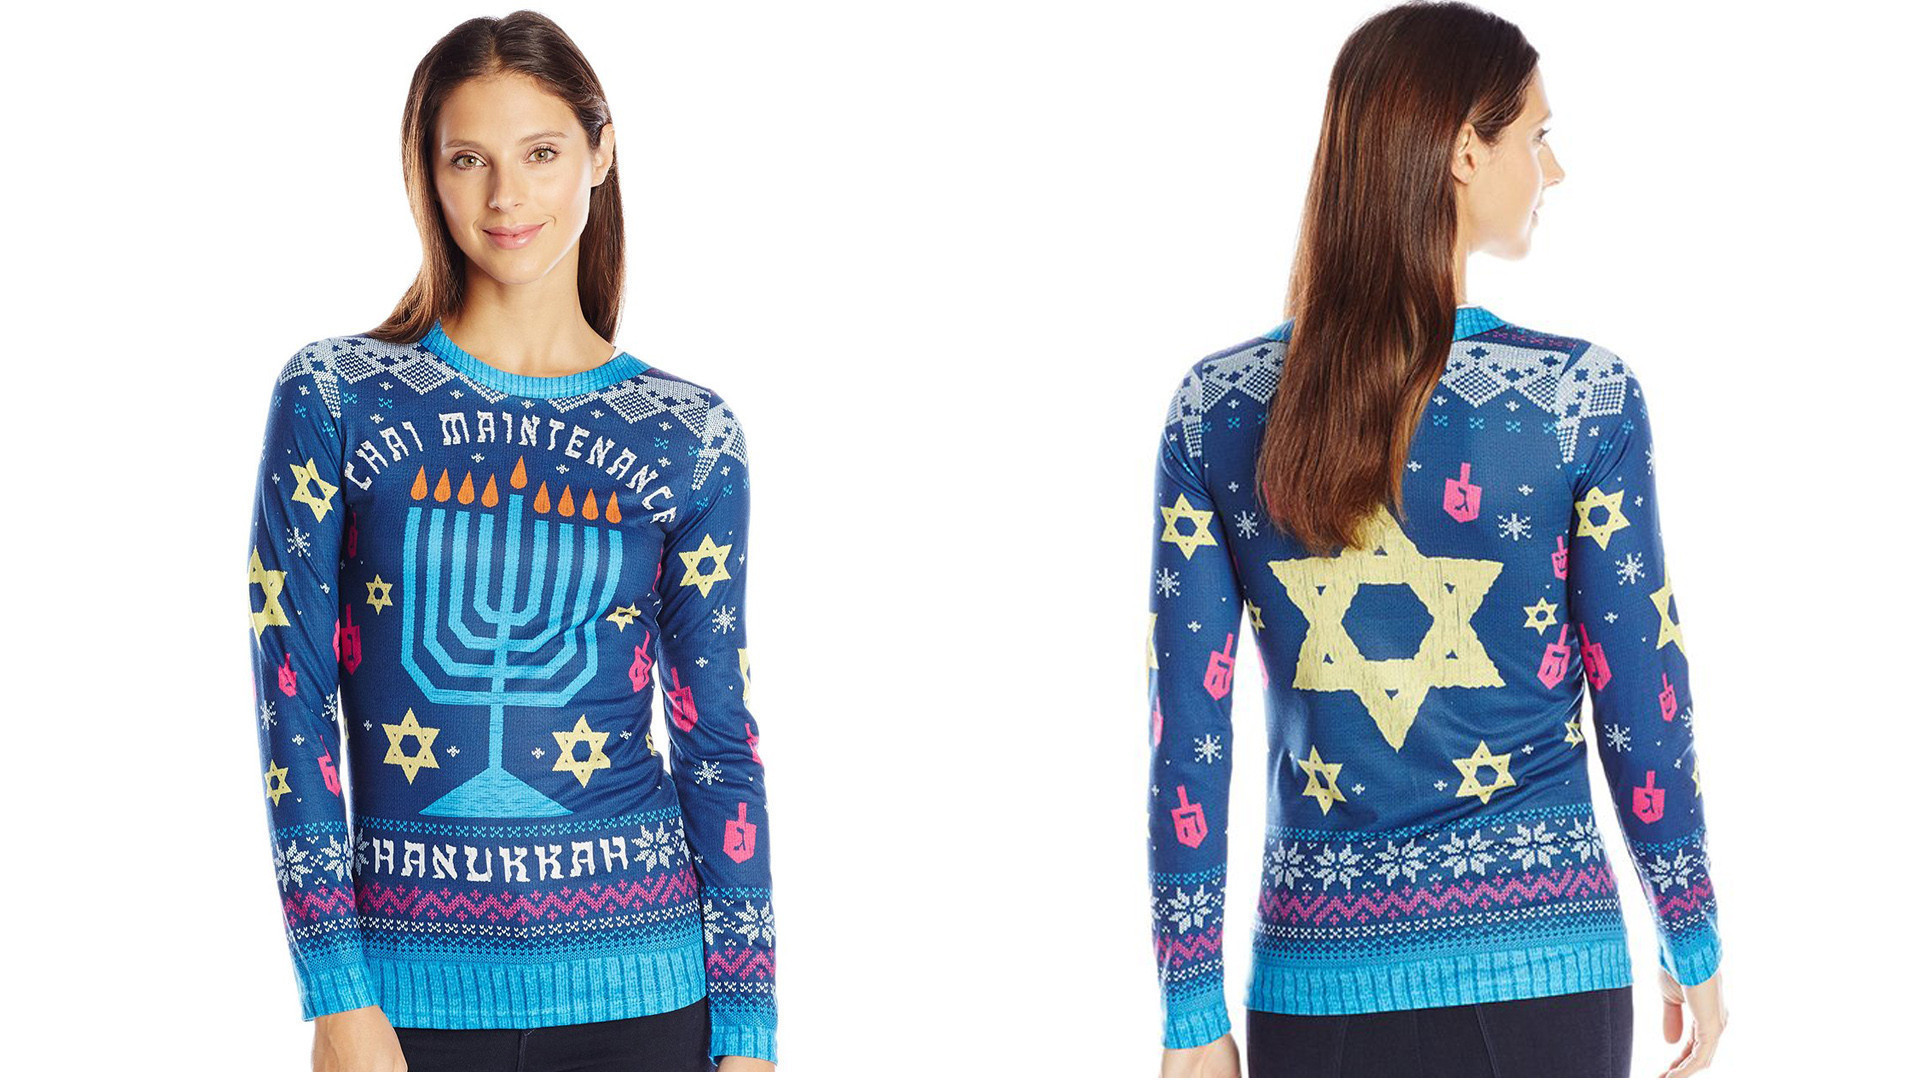 nordstrom pulls controversial hanukkah sweater after facebook firestorm chicago tribune - Nordstrom Christmas Sweaters